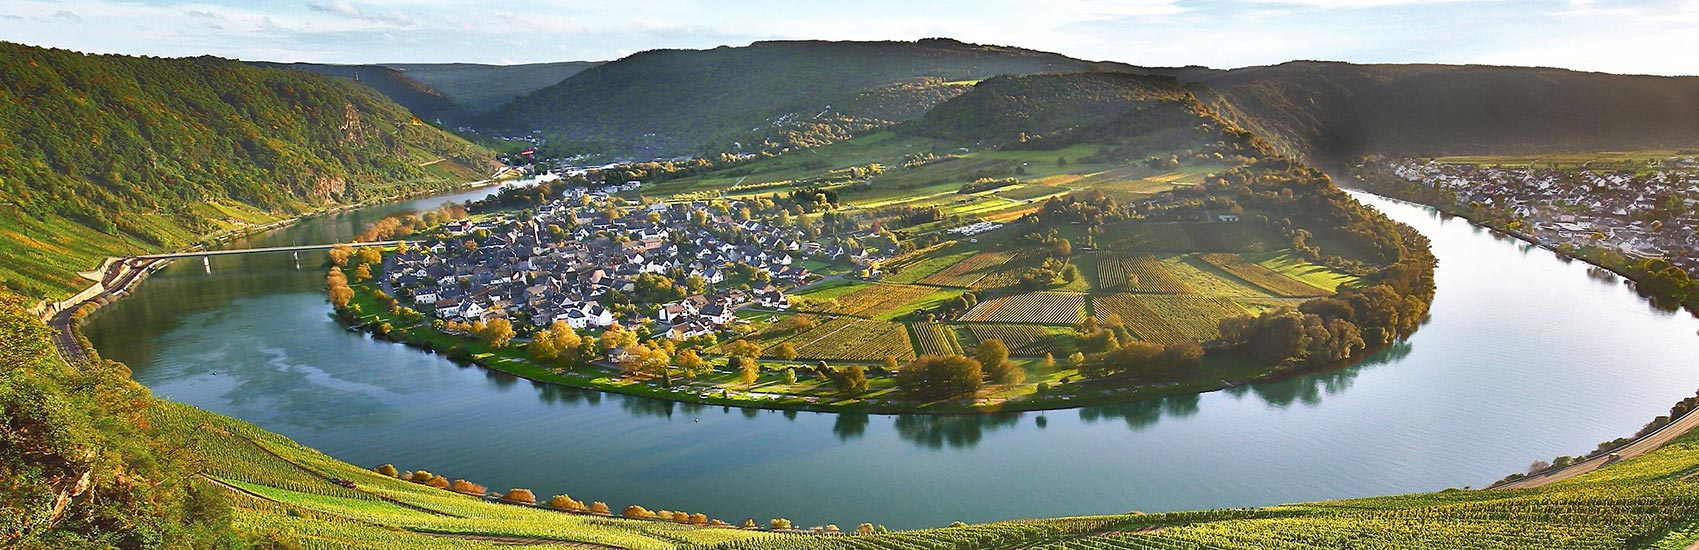 Special Savings on European River Cruises with AmaWaterways 5